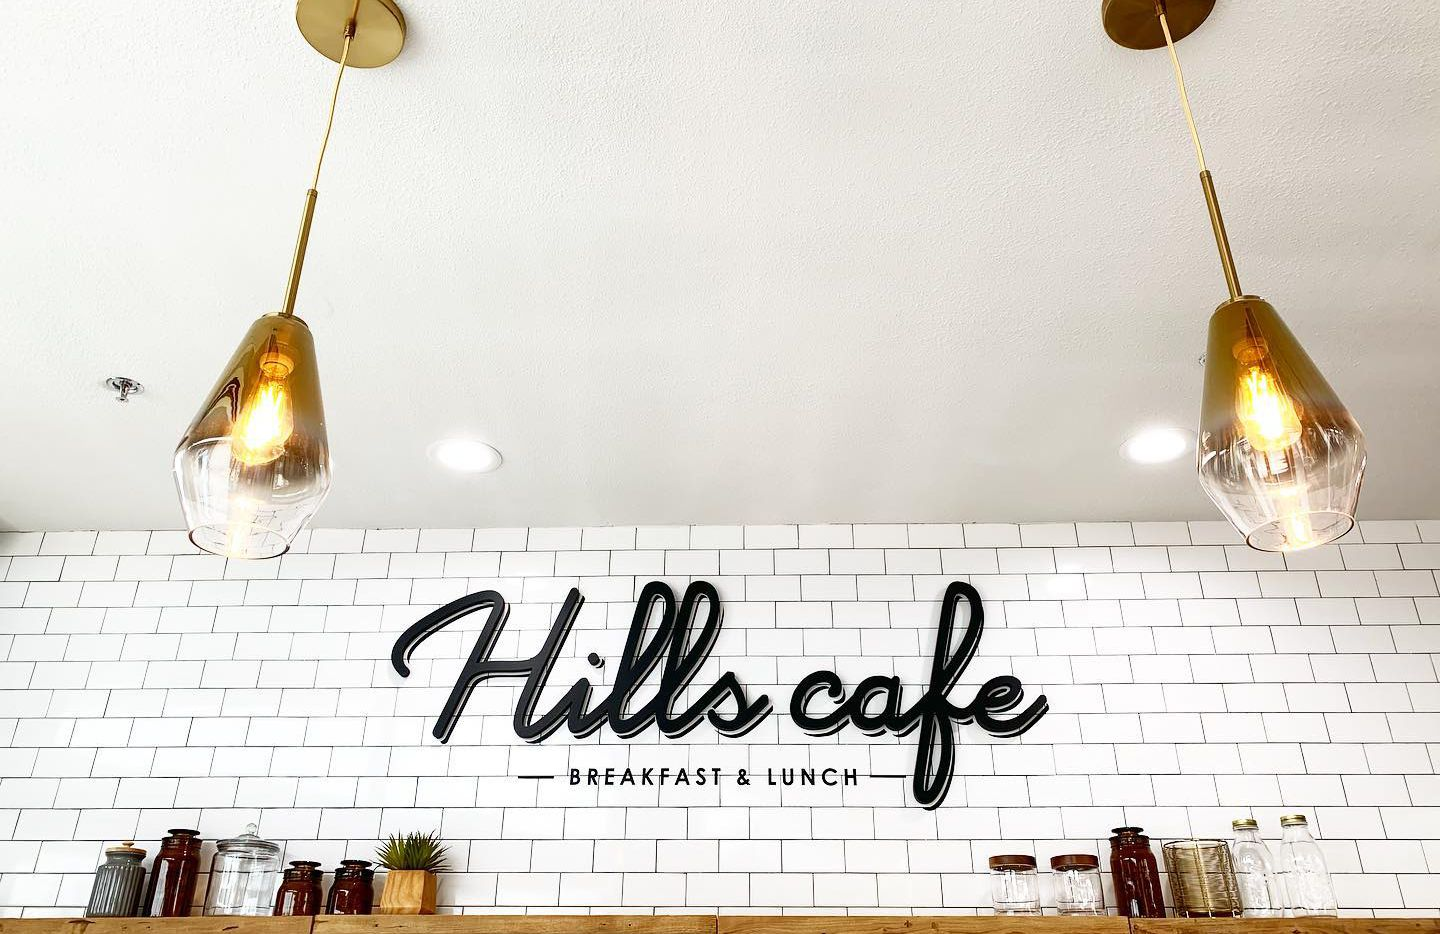 Hills Cafe is new on the breakfast/lunch scene in the Lewisville/The Colony area.